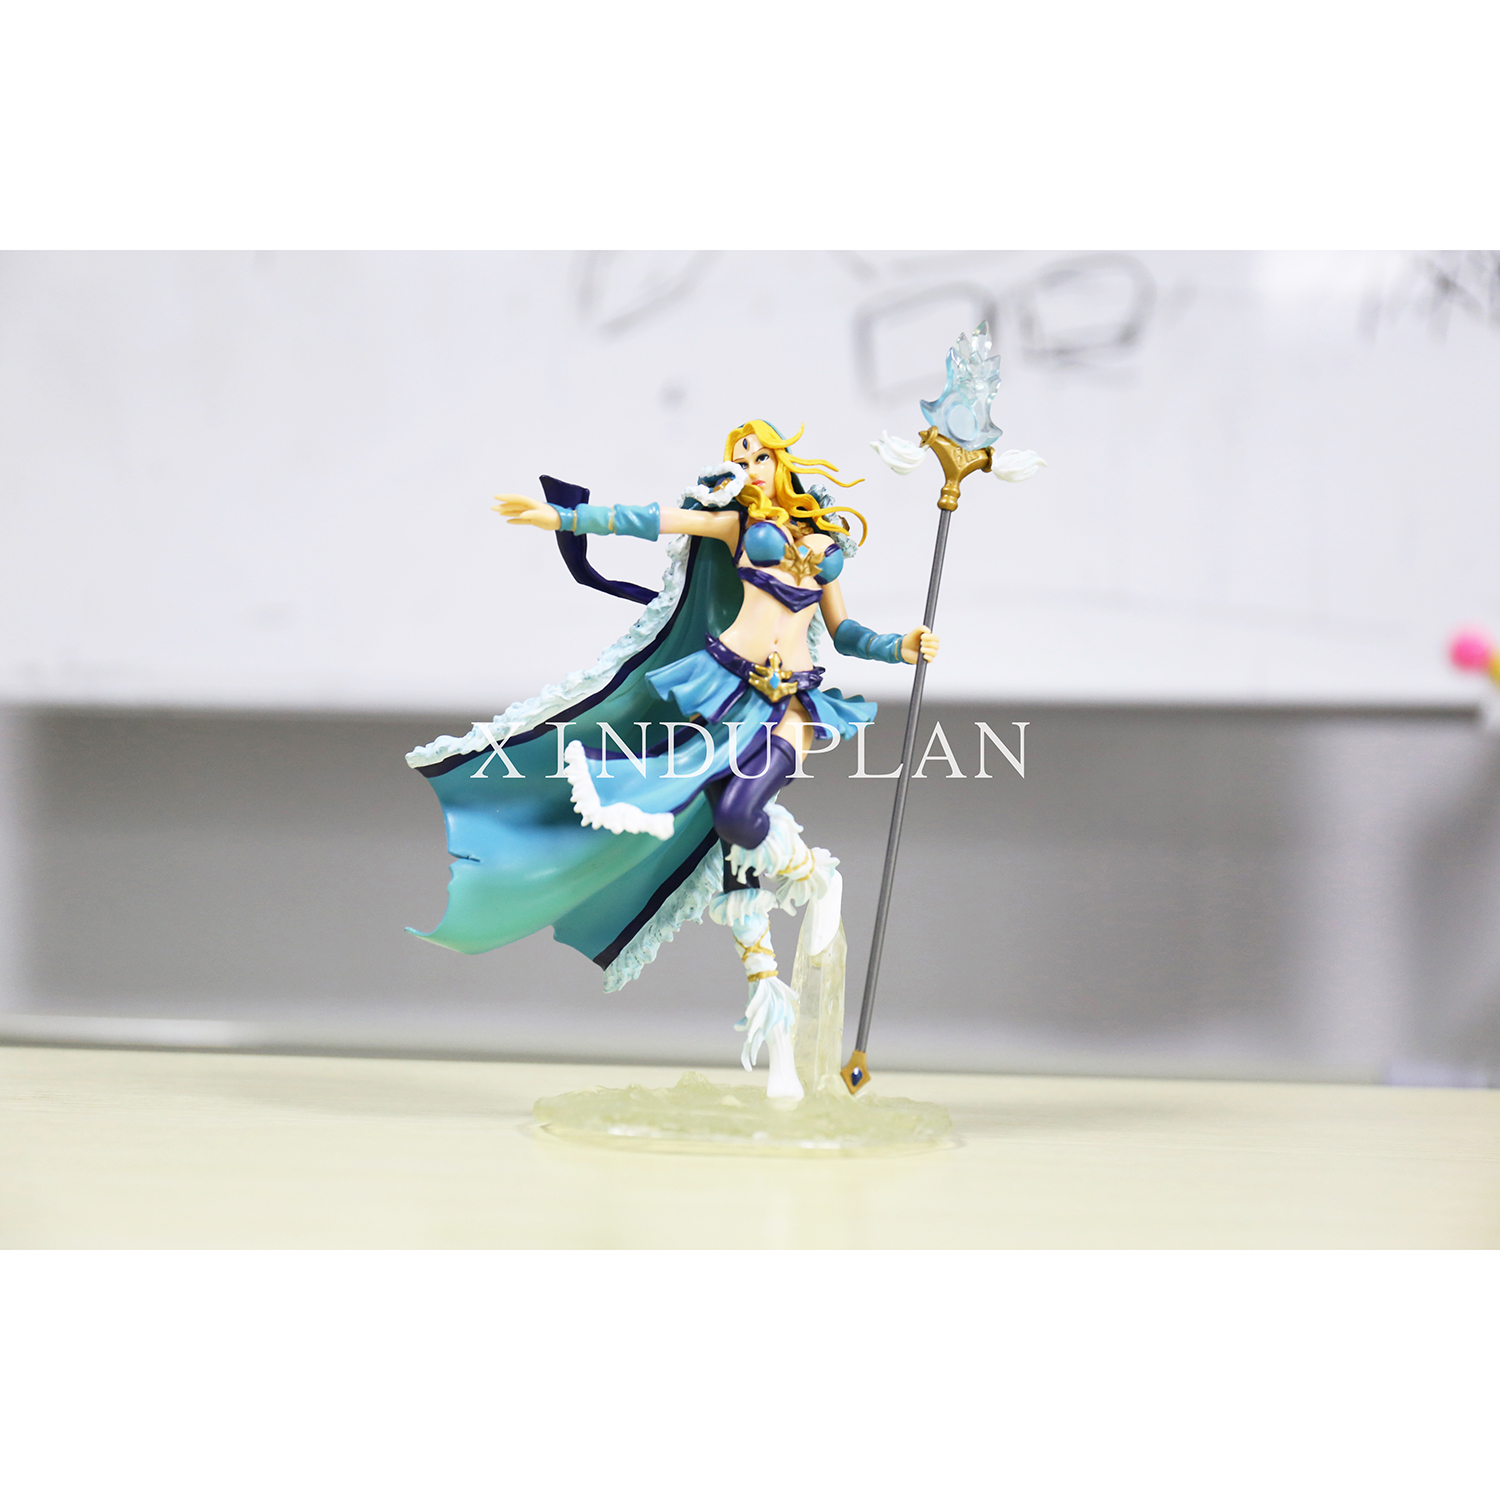 XINDUPLAN Dota 2 Anime Dota2 Crystal Maiden CM Action Figure Toys Cartoon Game 1Pcs 22cm PVC Kids Collection Model 0186 street fighter v chun li bigboystoys with light action figure game toys pvc action figure collection model toys kids for gift